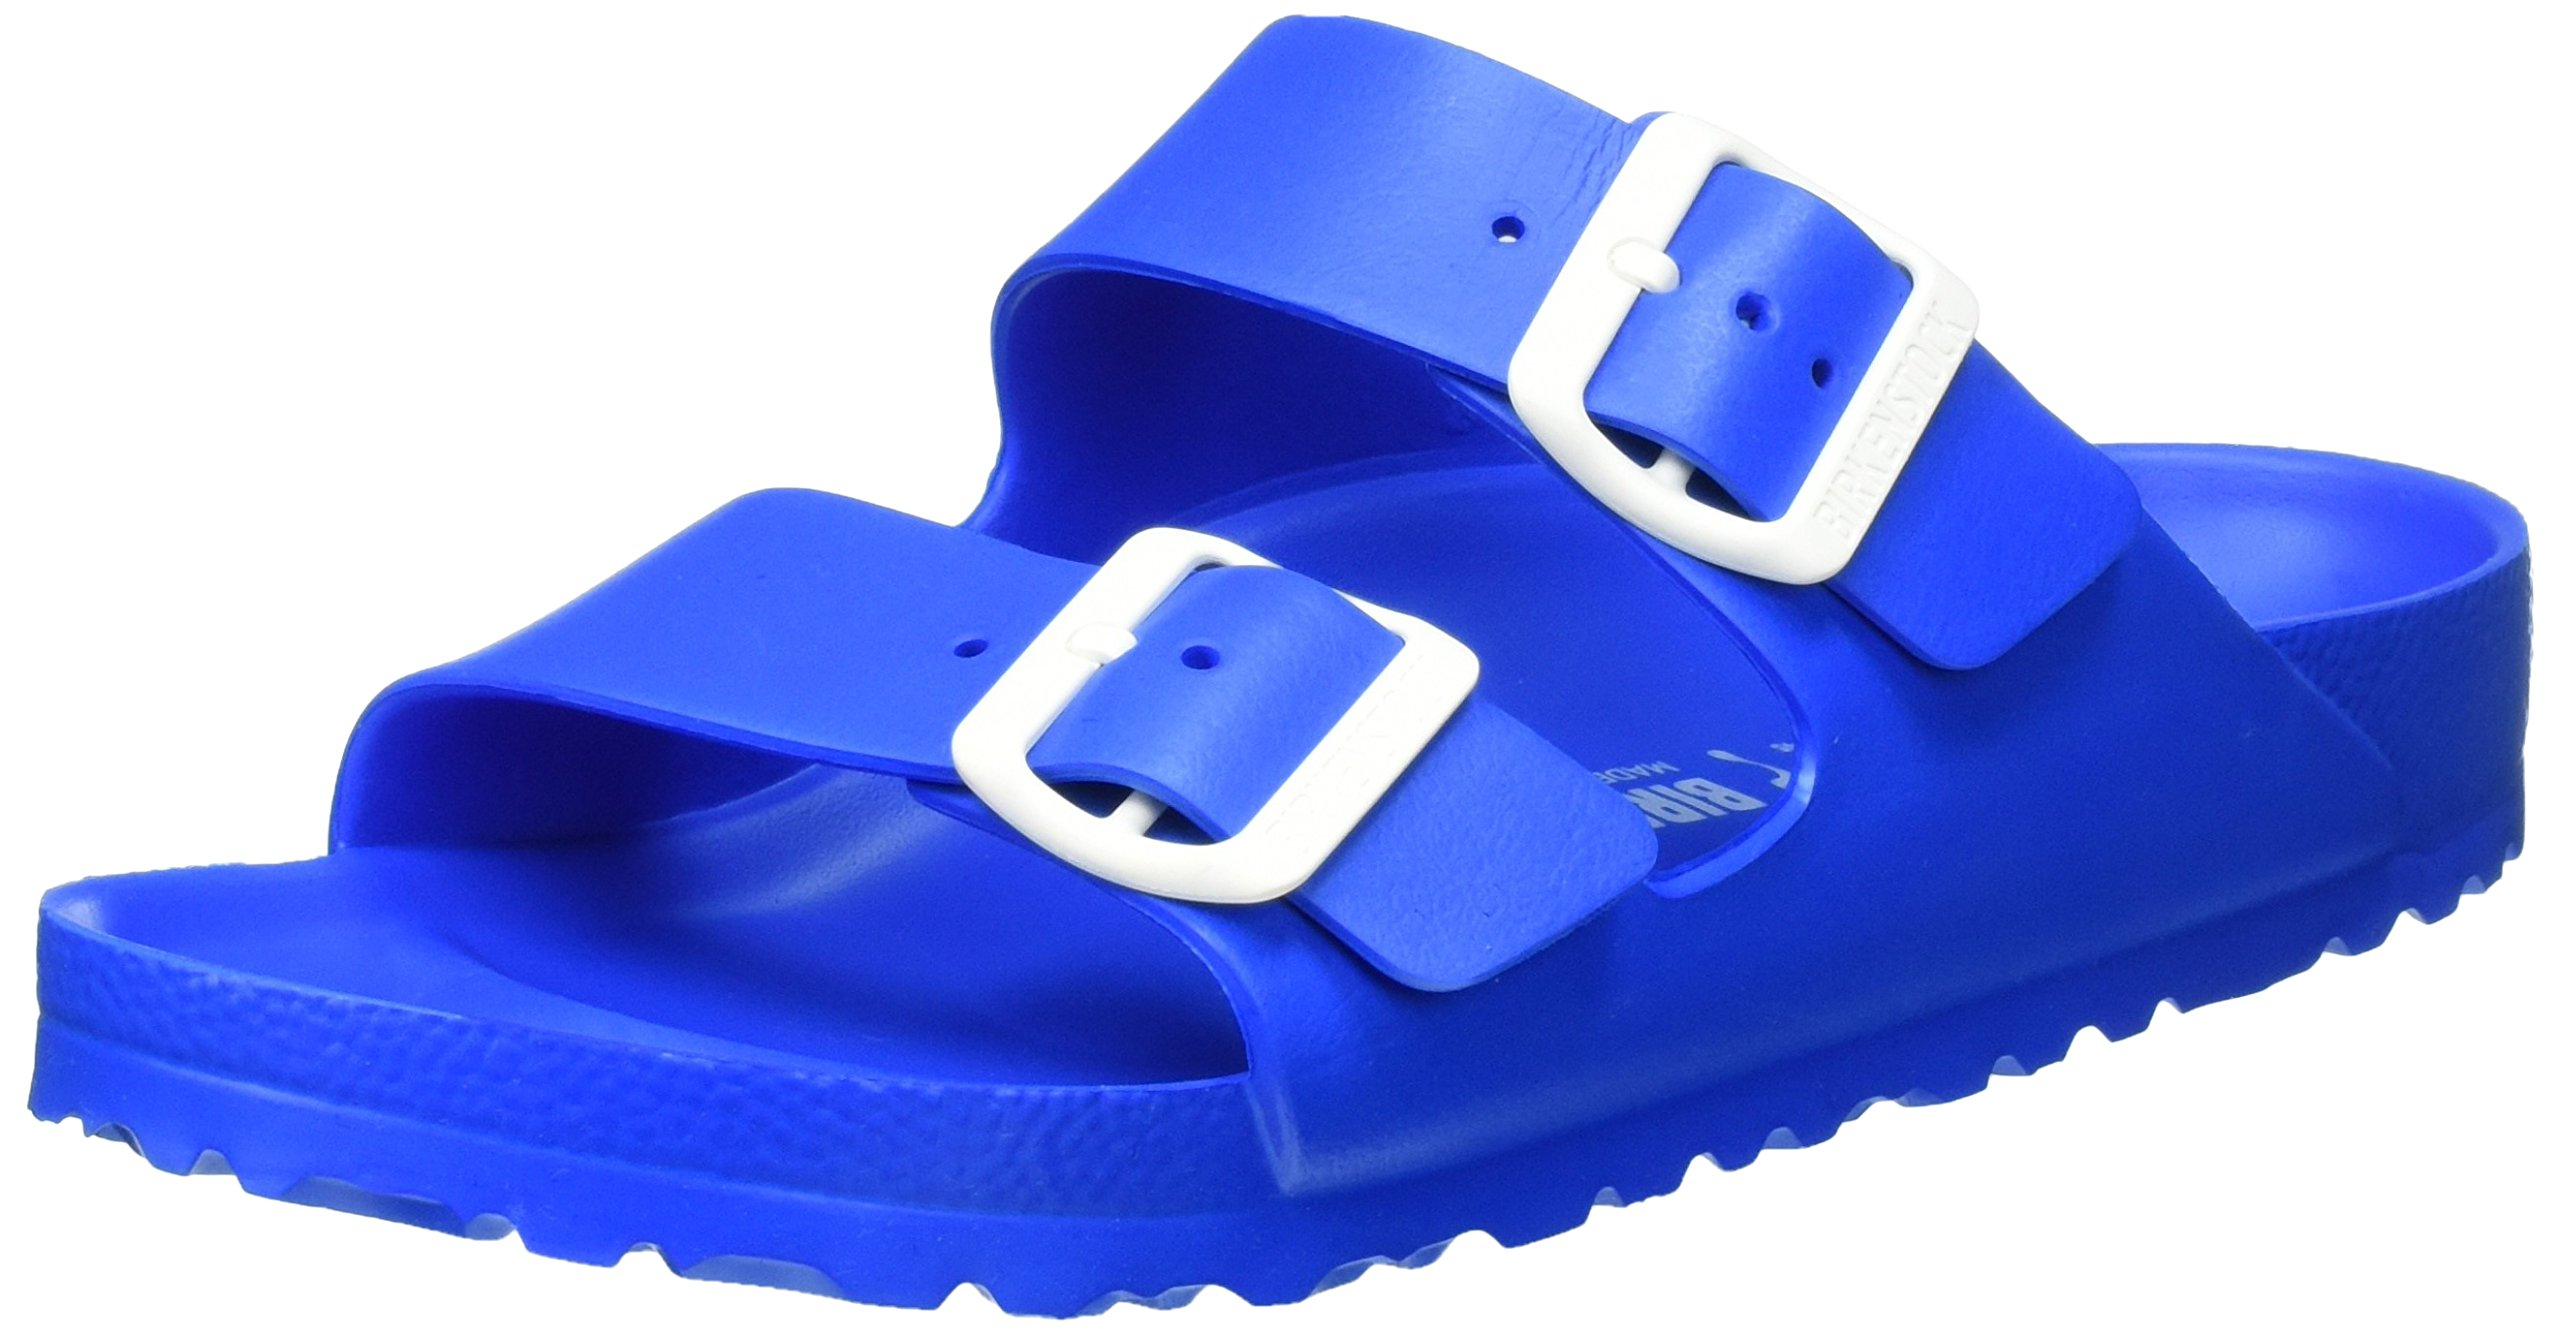 Birkenstock Unisex Arizona EVA Dual Buckle Sandals, Scuba Blue - EU 38 - US L7 M5 Narrow